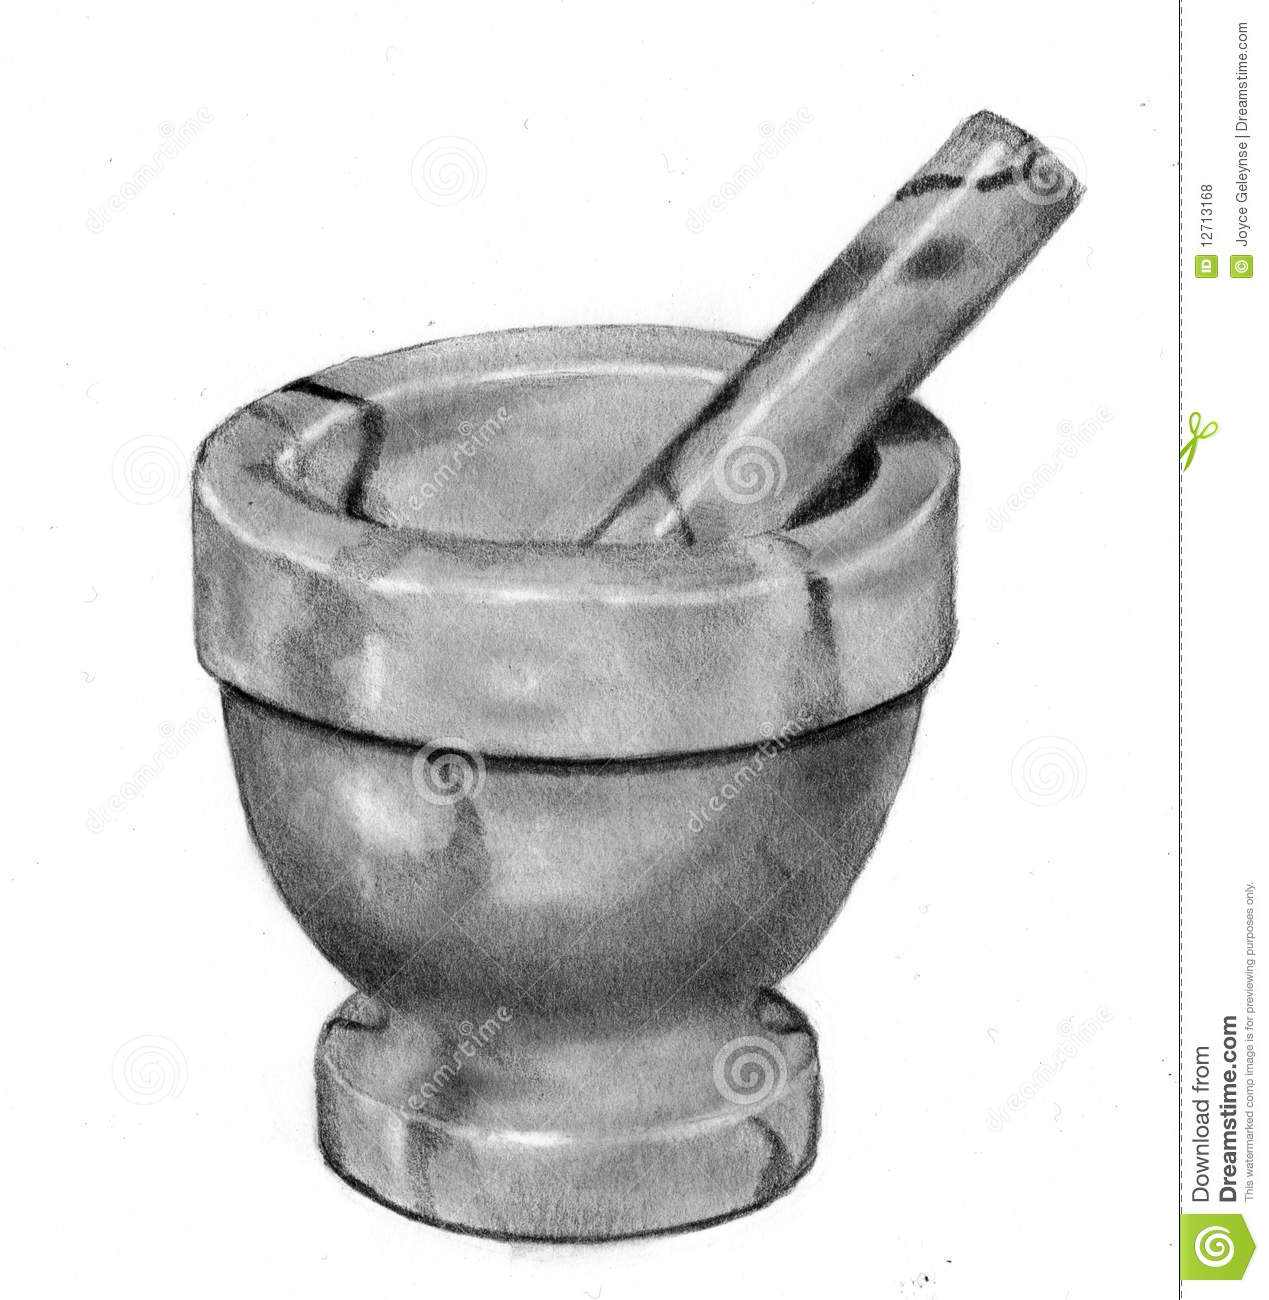 Pencil Drawing Of Mortar And Pestle Stock Illustration